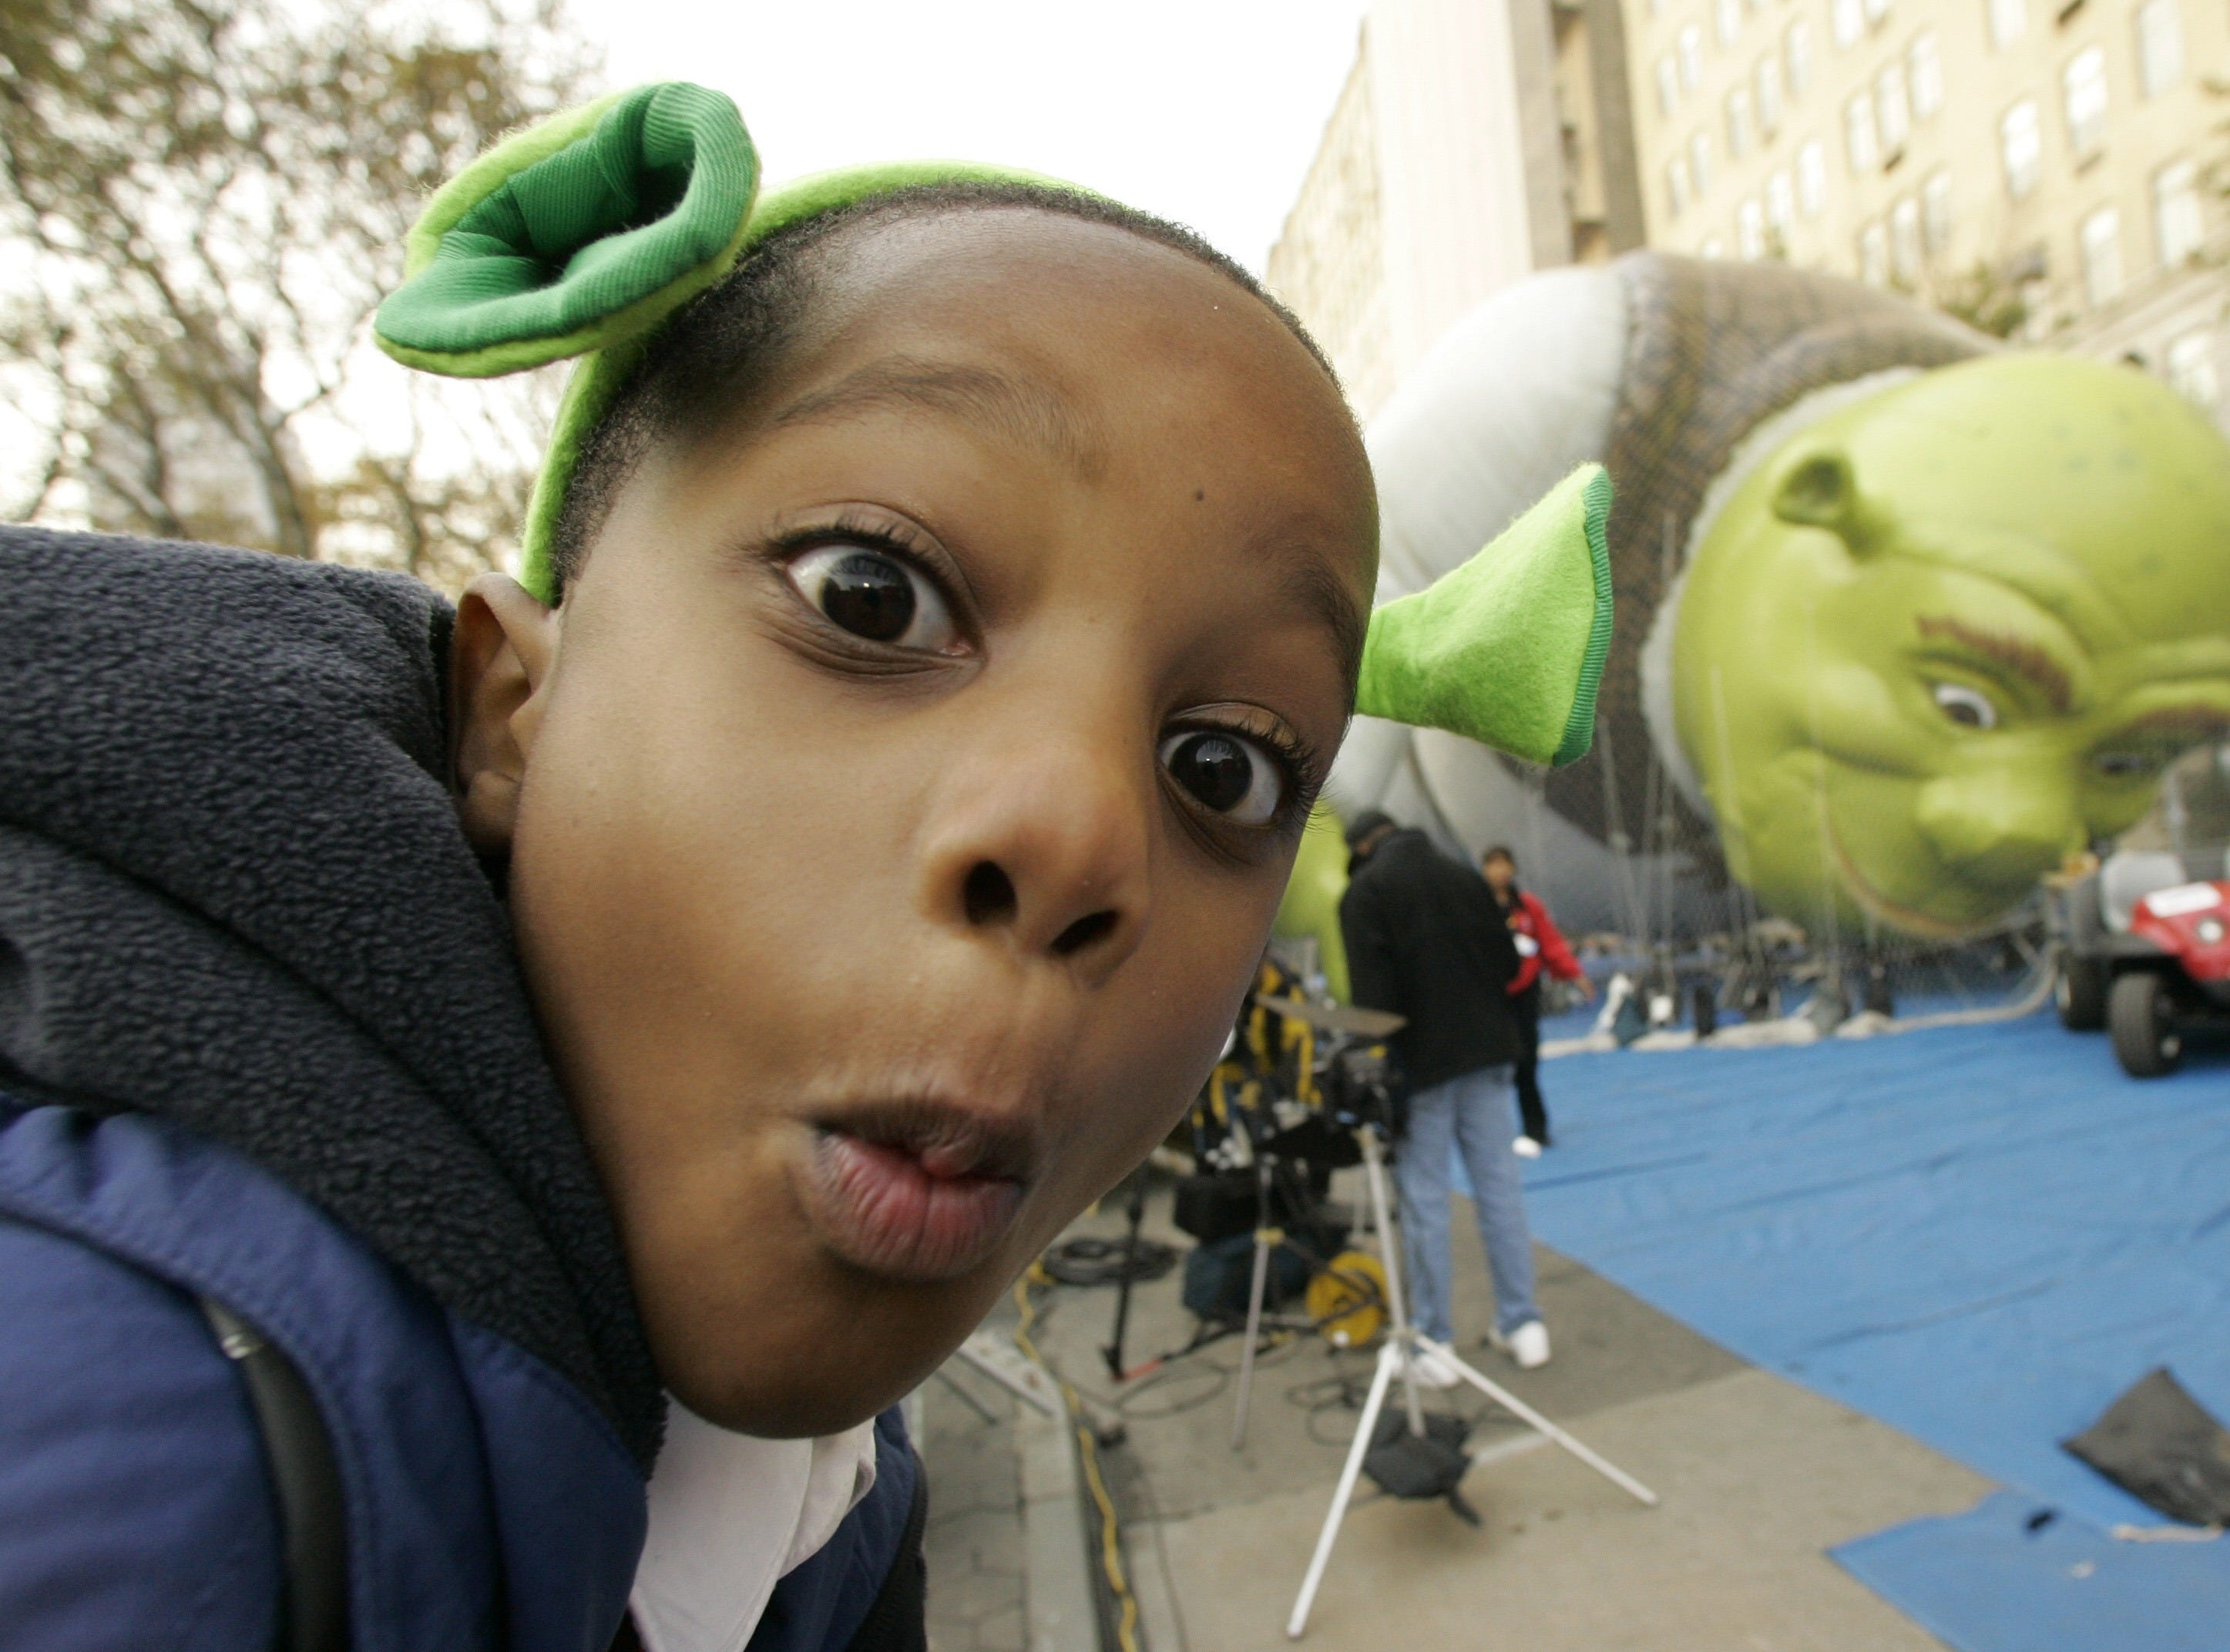 """Maurace Morris, 6, of the Brooklyn borough of New York, plays for the camera near the """"Shrek"""" balloon during Macy's 81st Annual Thanksgiving Day Parade """"Inflation Eve,"""" Wednesday, Nov. 21, 2007 in New York. Preparations started Wednesday afternoon as giant balloons and many smaller inflatables were filled with a helium air mixture for the Thanksgiving parade march down 5th Ave. (AP Photo/Mary Altaffer)"""